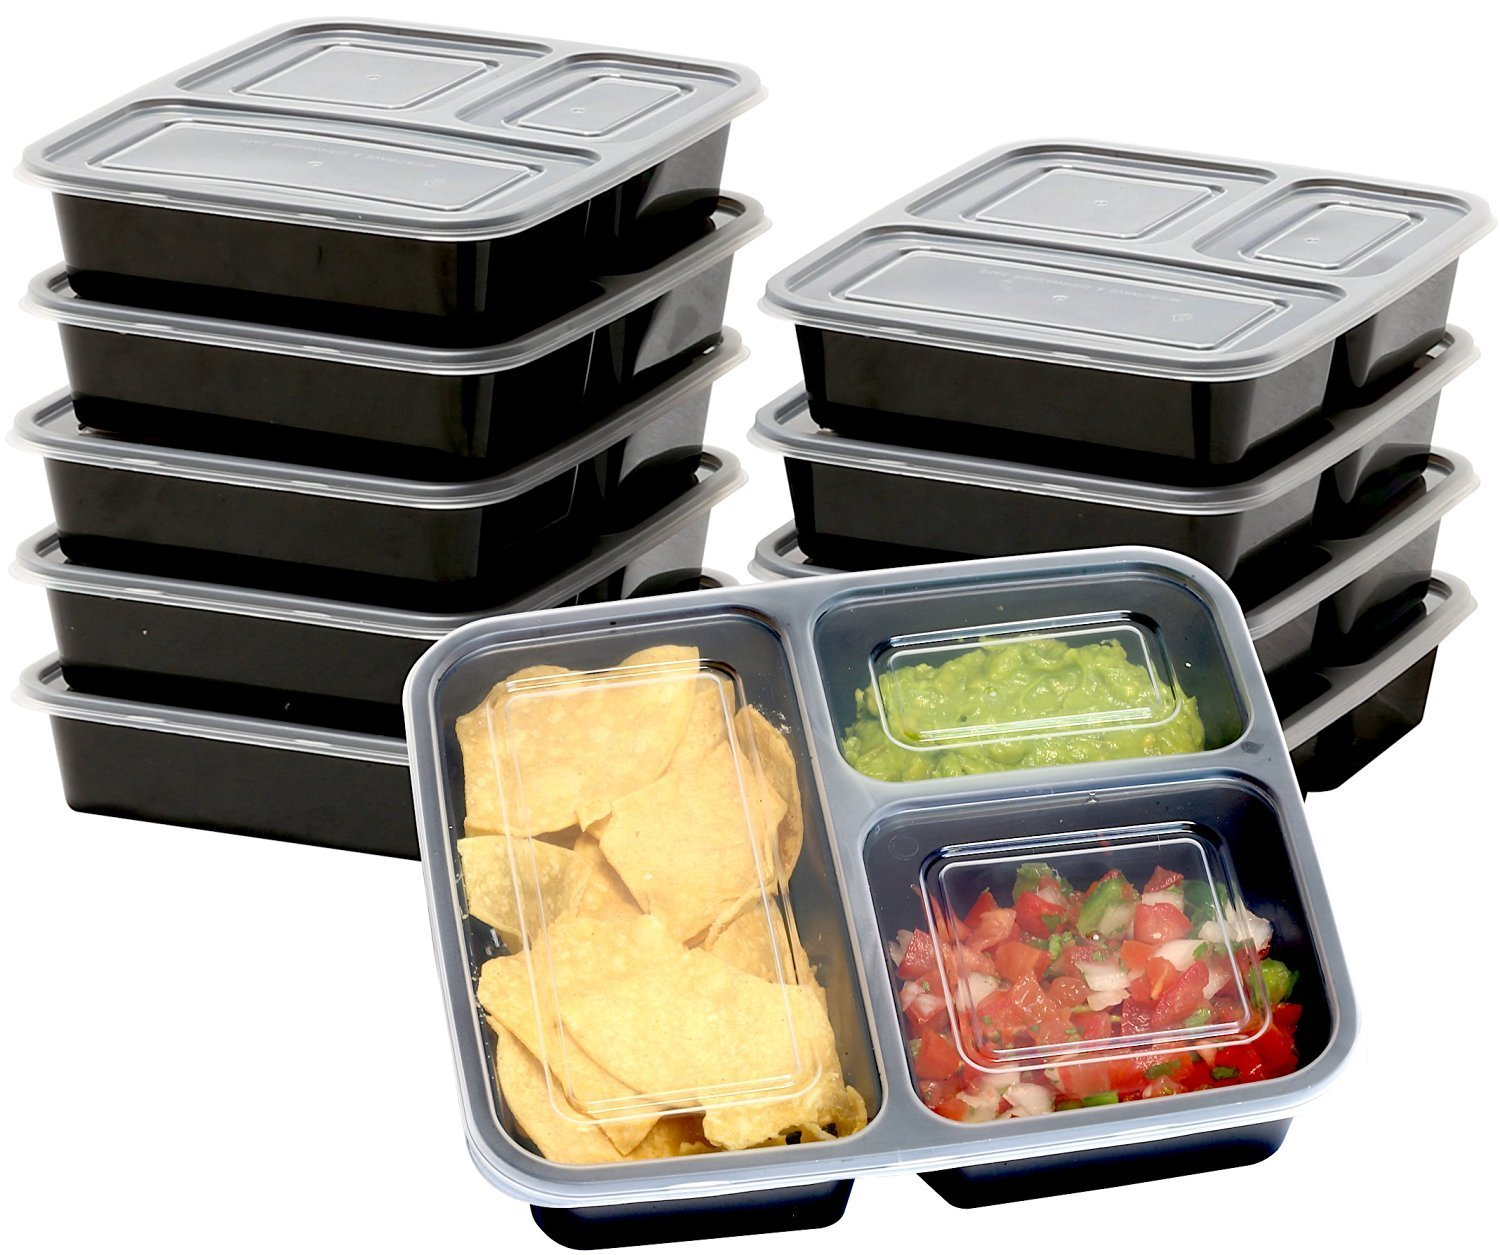 best food storage containers reviews compare now. Black Bedroom Furniture Sets. Home Design Ideas